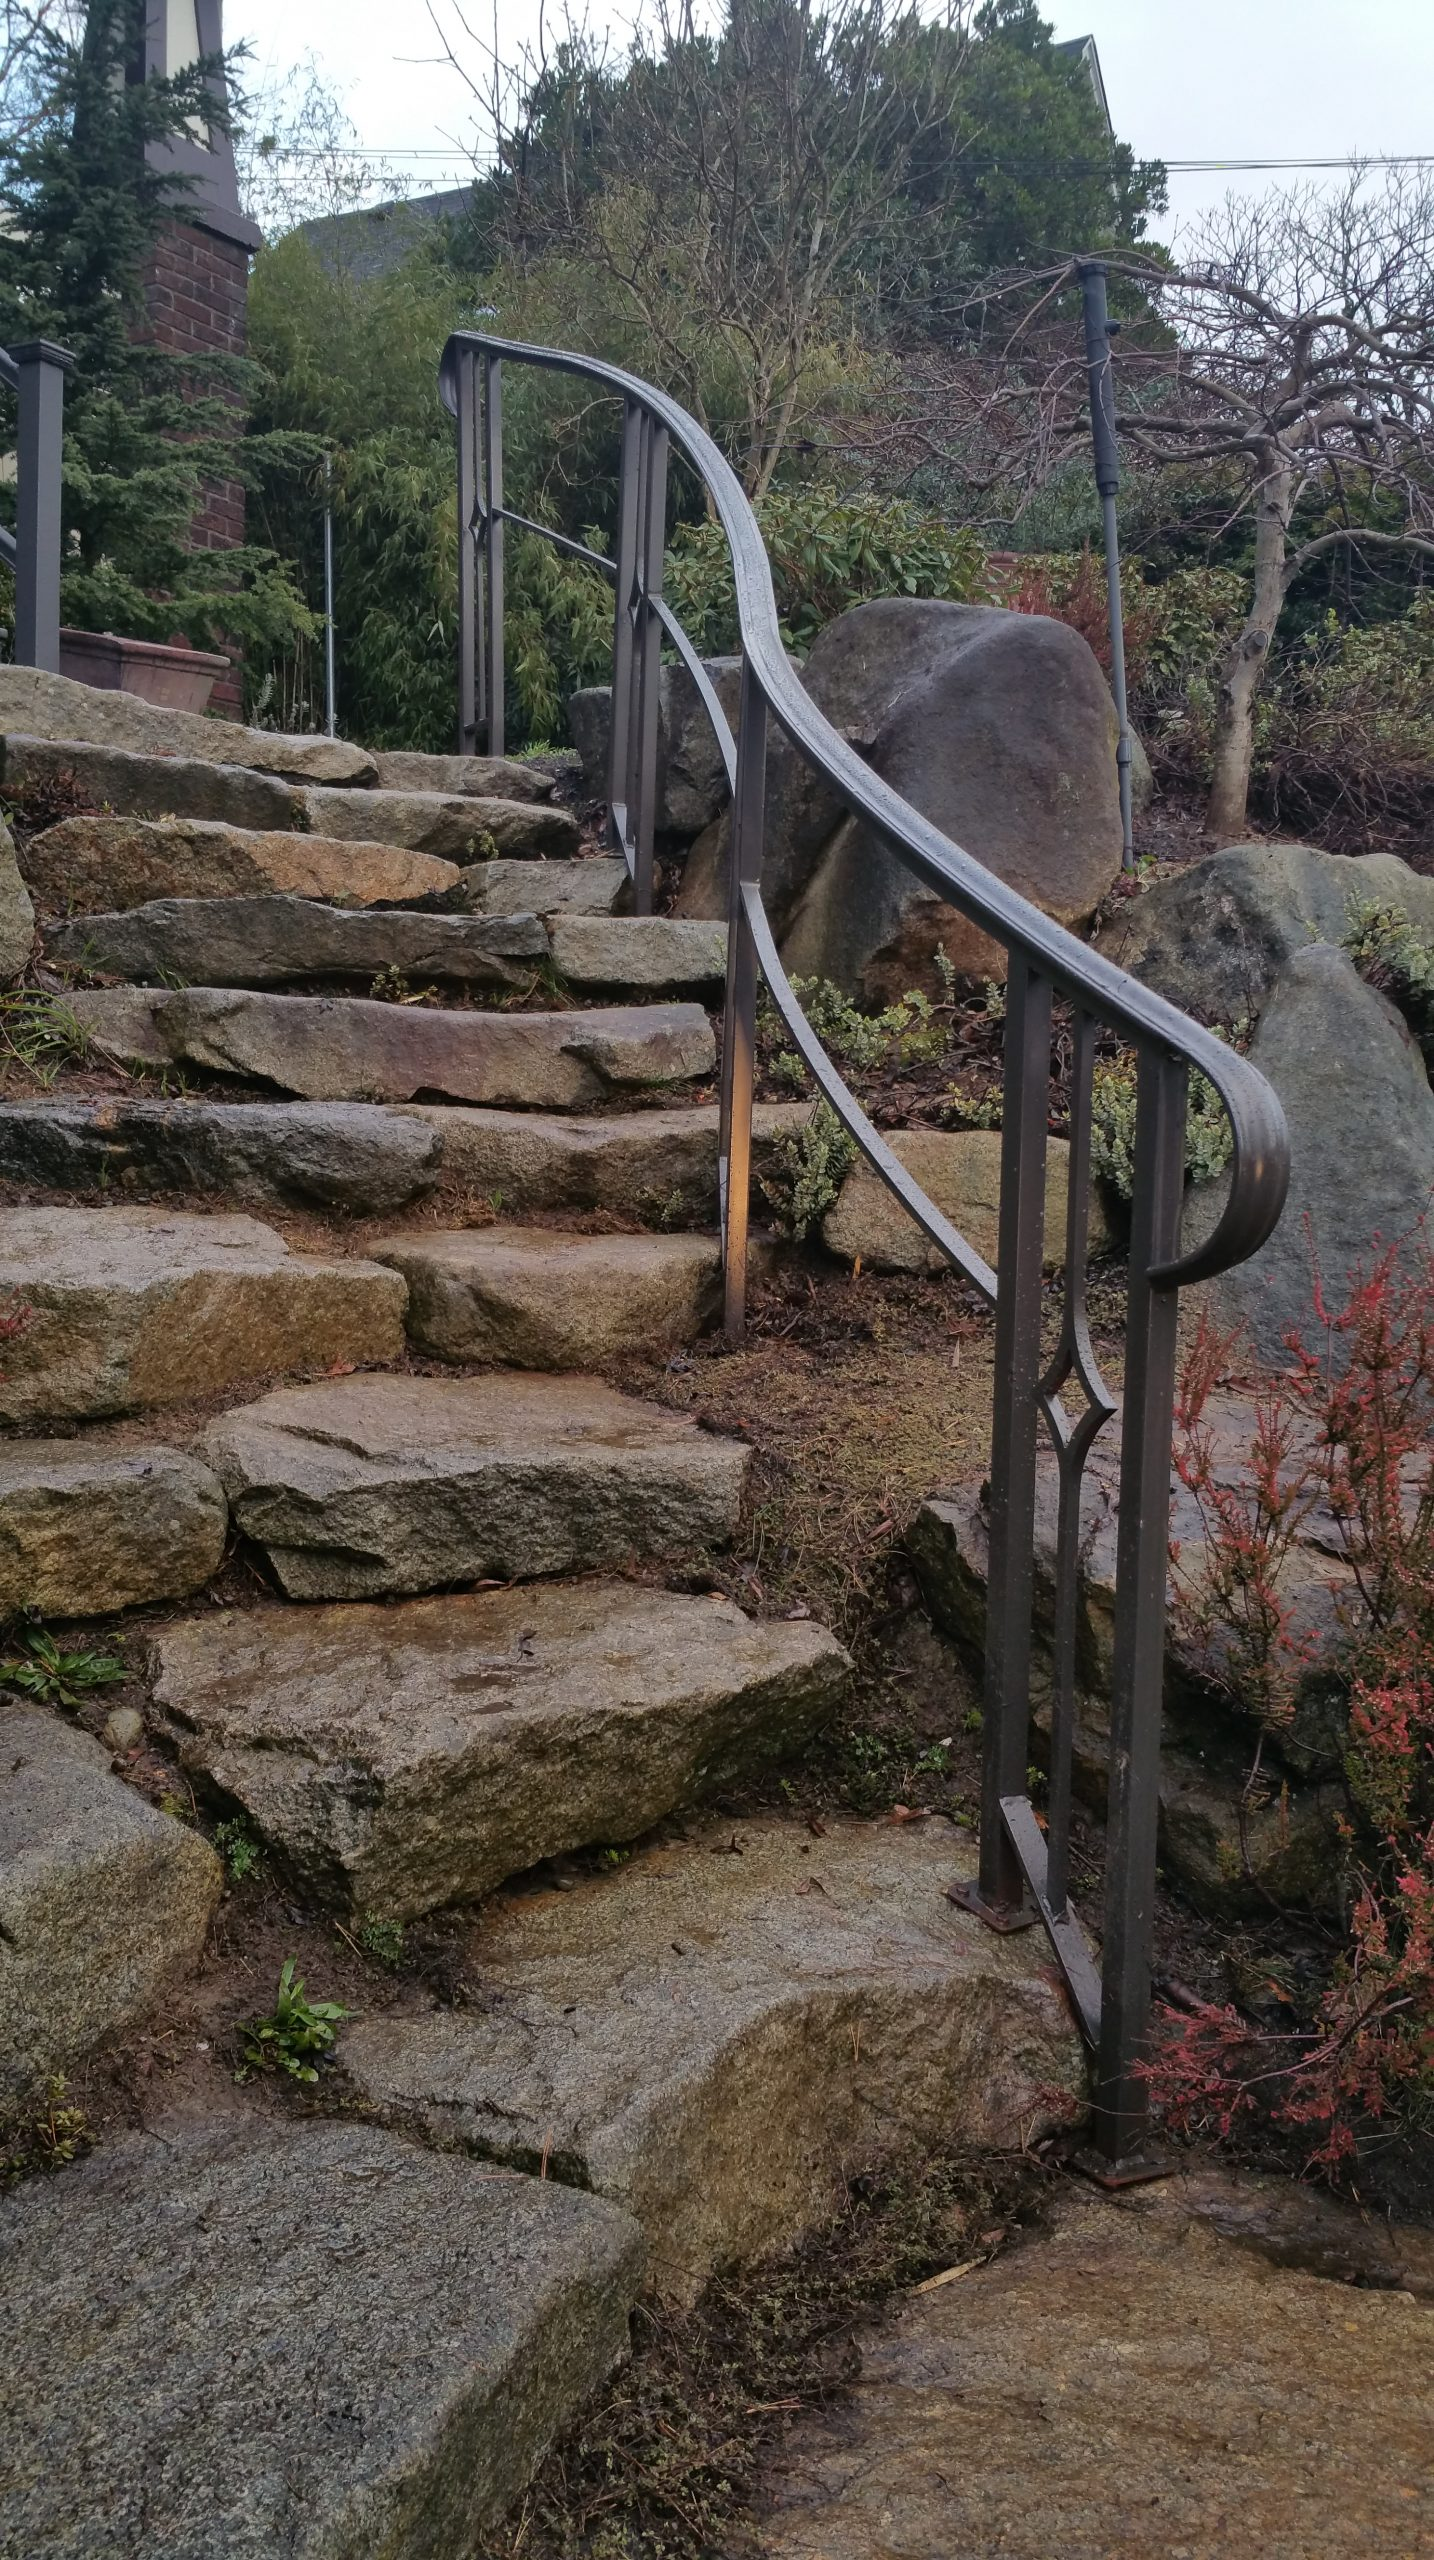 Handrail with lighting in the day